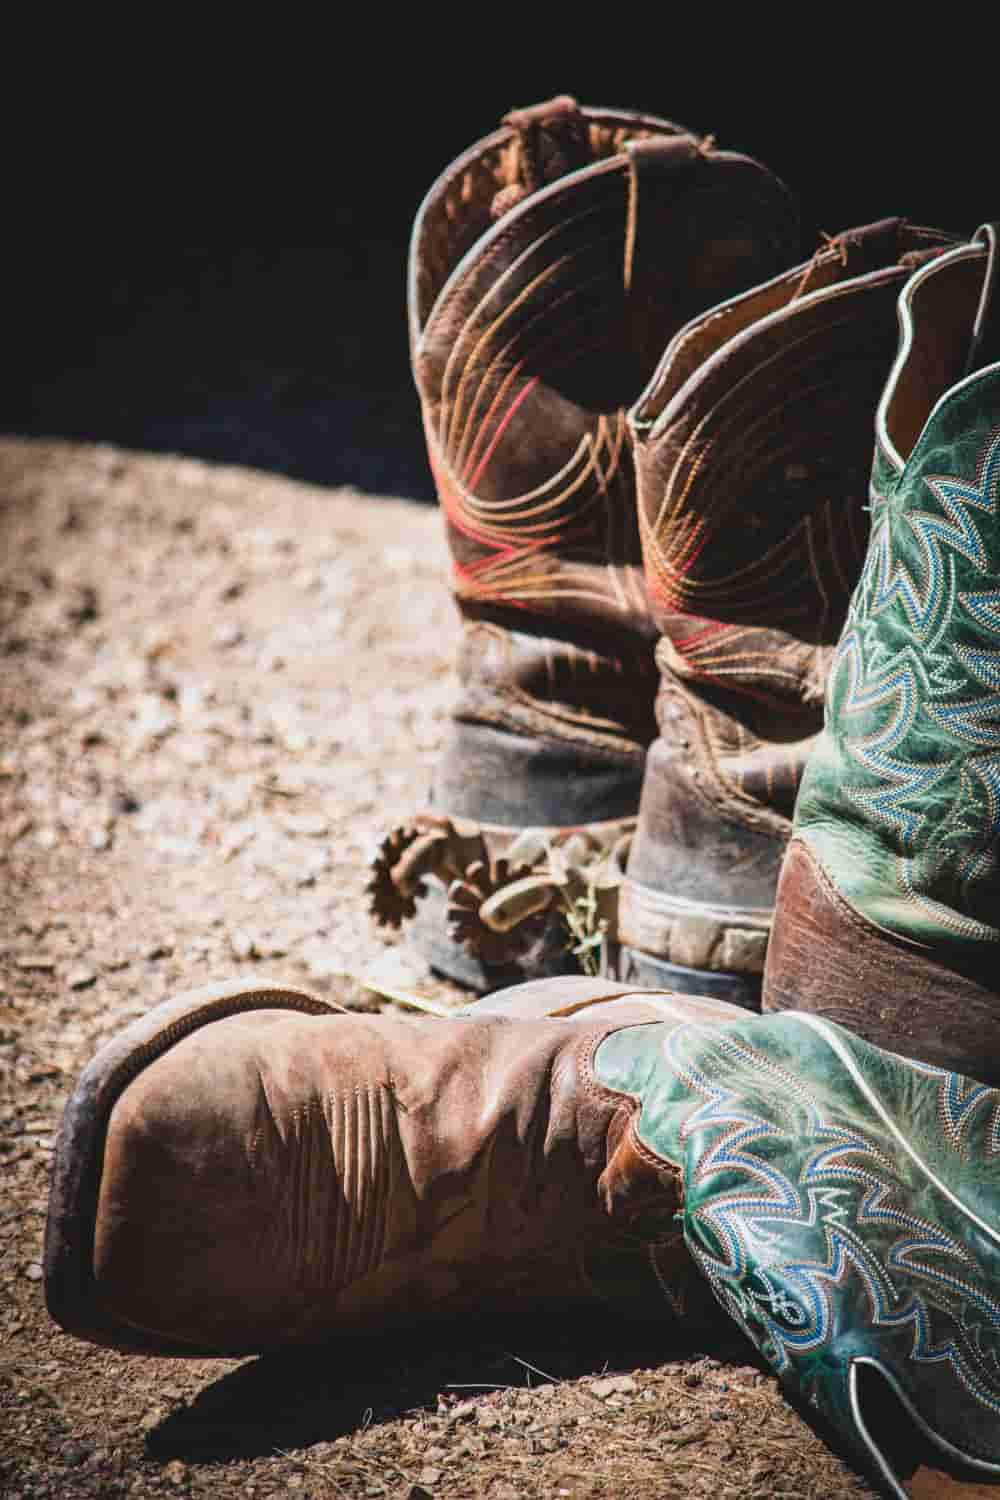 Let's get back to the comparison of cowboy boots. In previous articles, we have discussed riding heel vs walking heel, square toe vs pointed toe … Today we come to a new topic: western work boots vs cowboy boots. Cowboy boots are already a familiar boot, but what about western work boots? What are the features that make many people love them so much? Let's check it out!